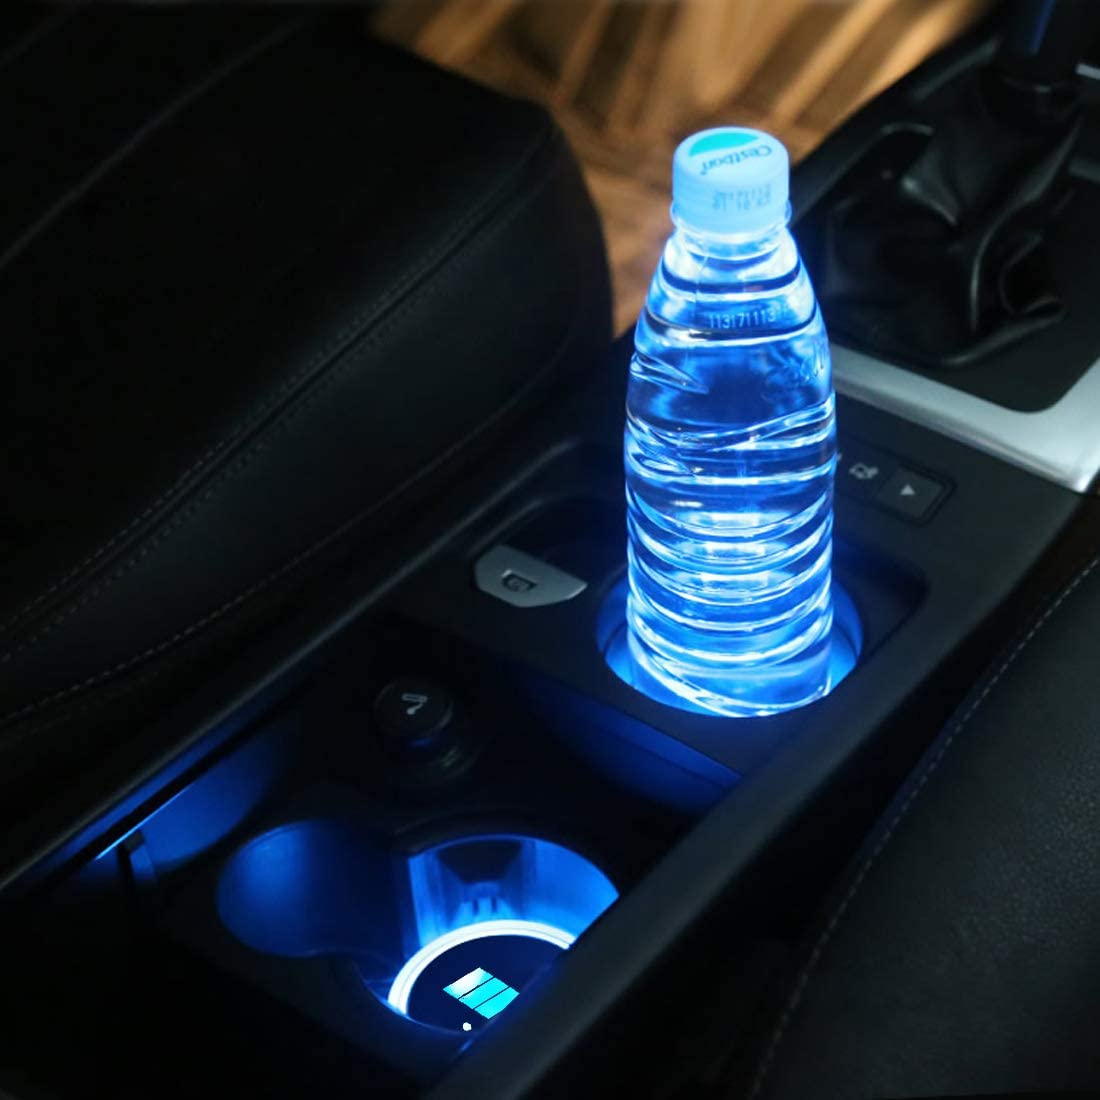 LED Car Logo Cup Holder Pad Bottle Drinks Coaster Waterproof 7 Colors Changing USB Charging Luminescent Mat Decoration Light Interior Atmosphere Lamp 2PCS fit C-adillac